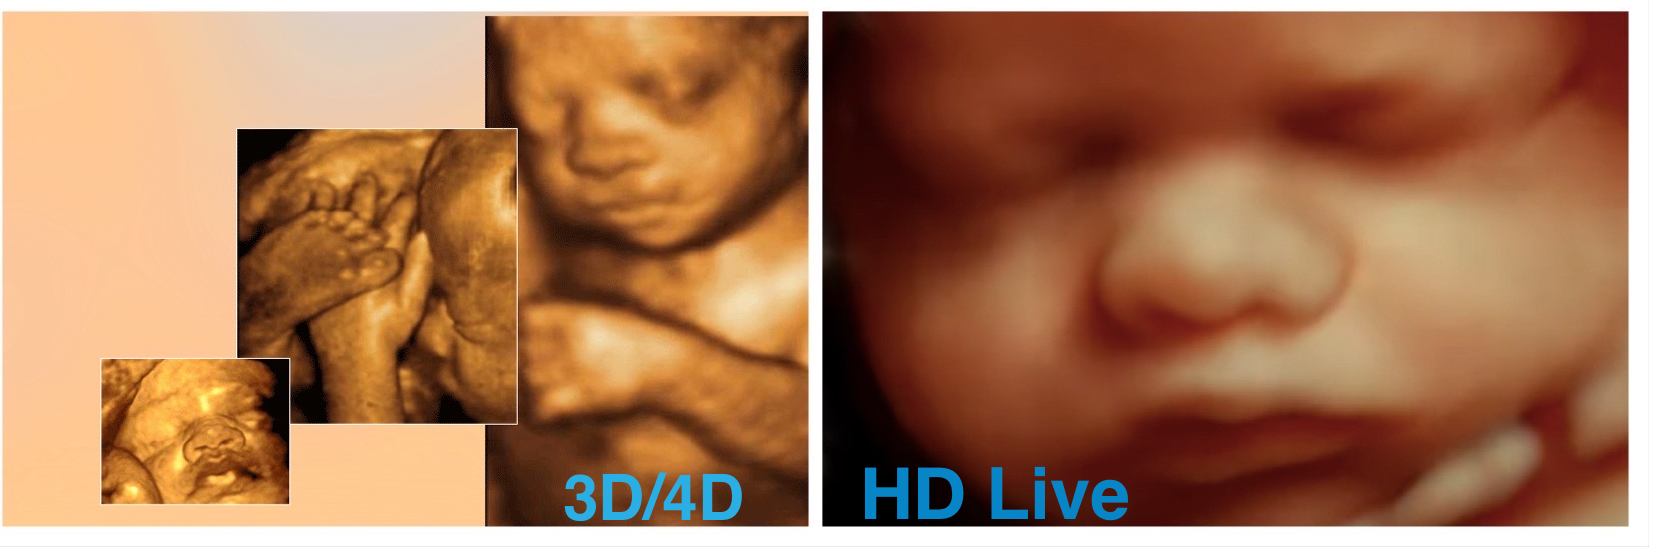 how much does your 3d ultrasound cost